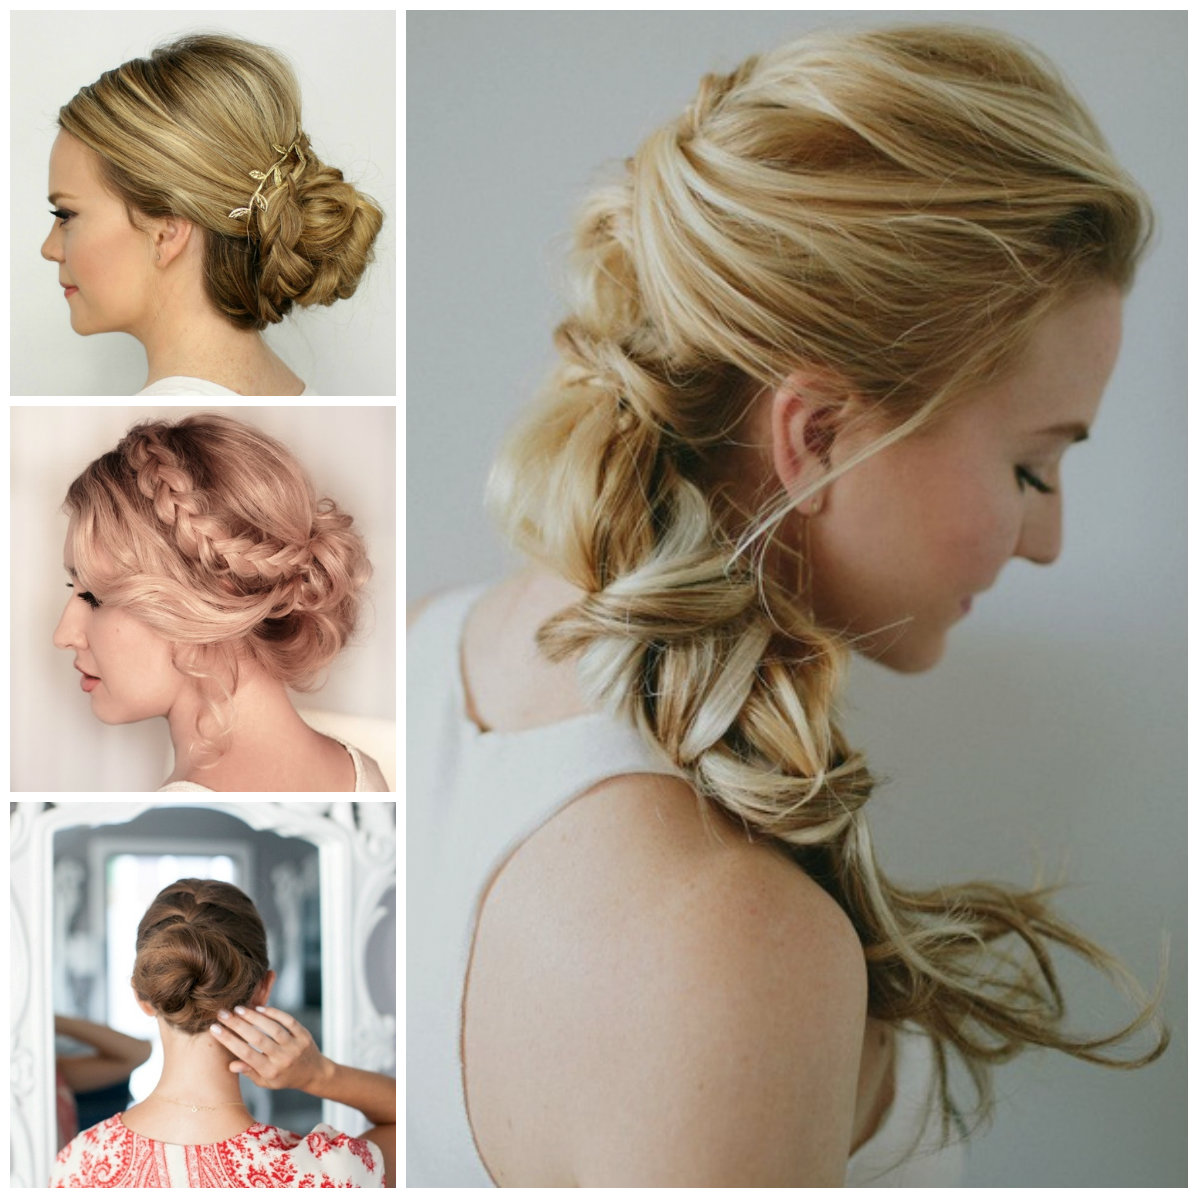 formal hairstyles | 2017 haircuts, hairstyles and hair colors